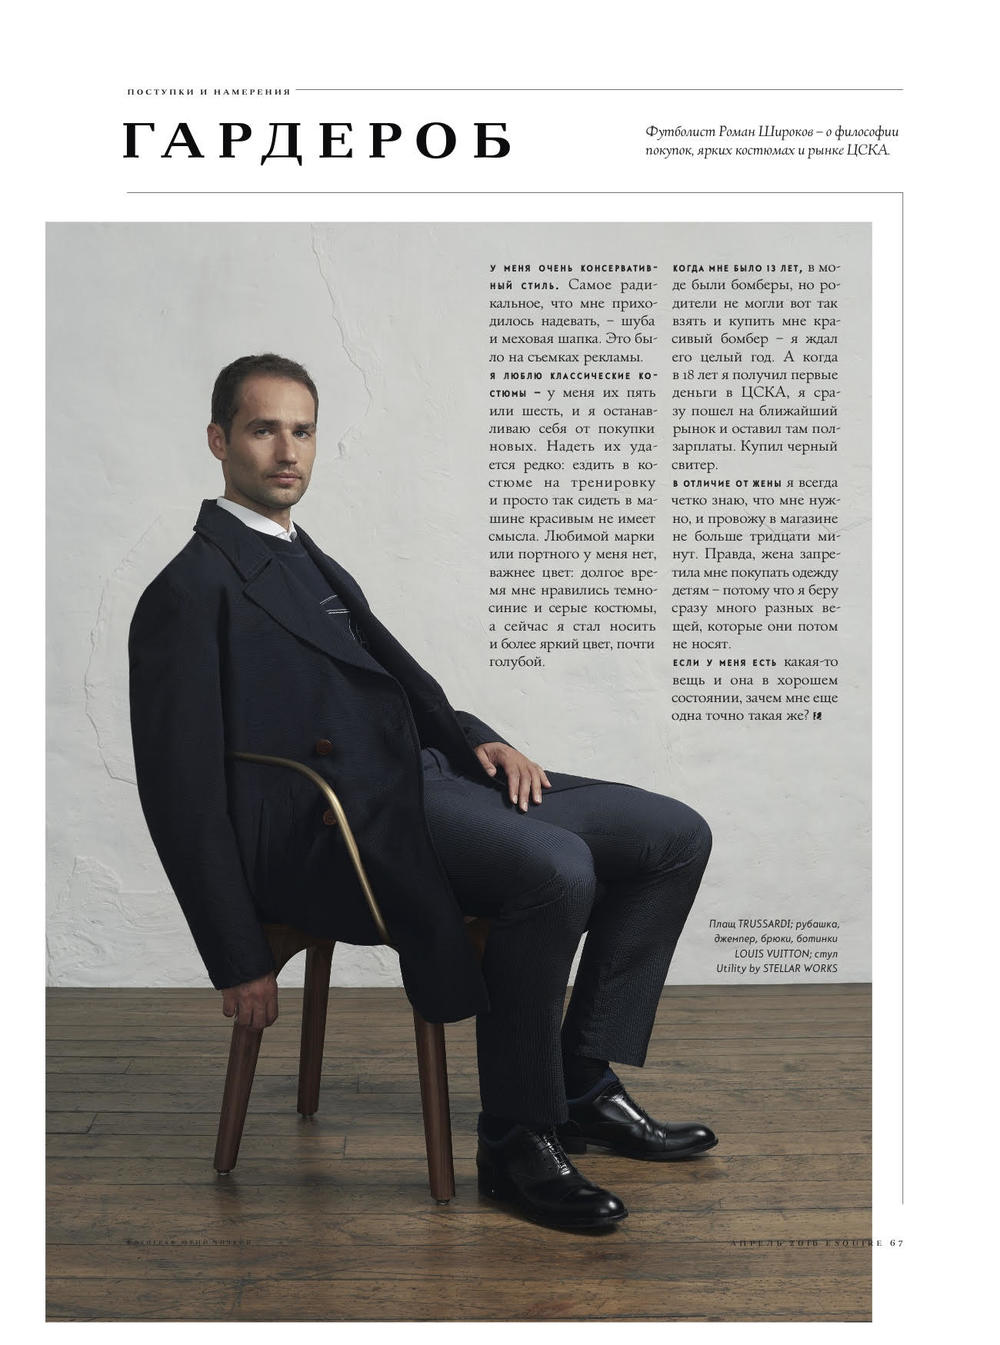 Roman Shirokov, Esquire